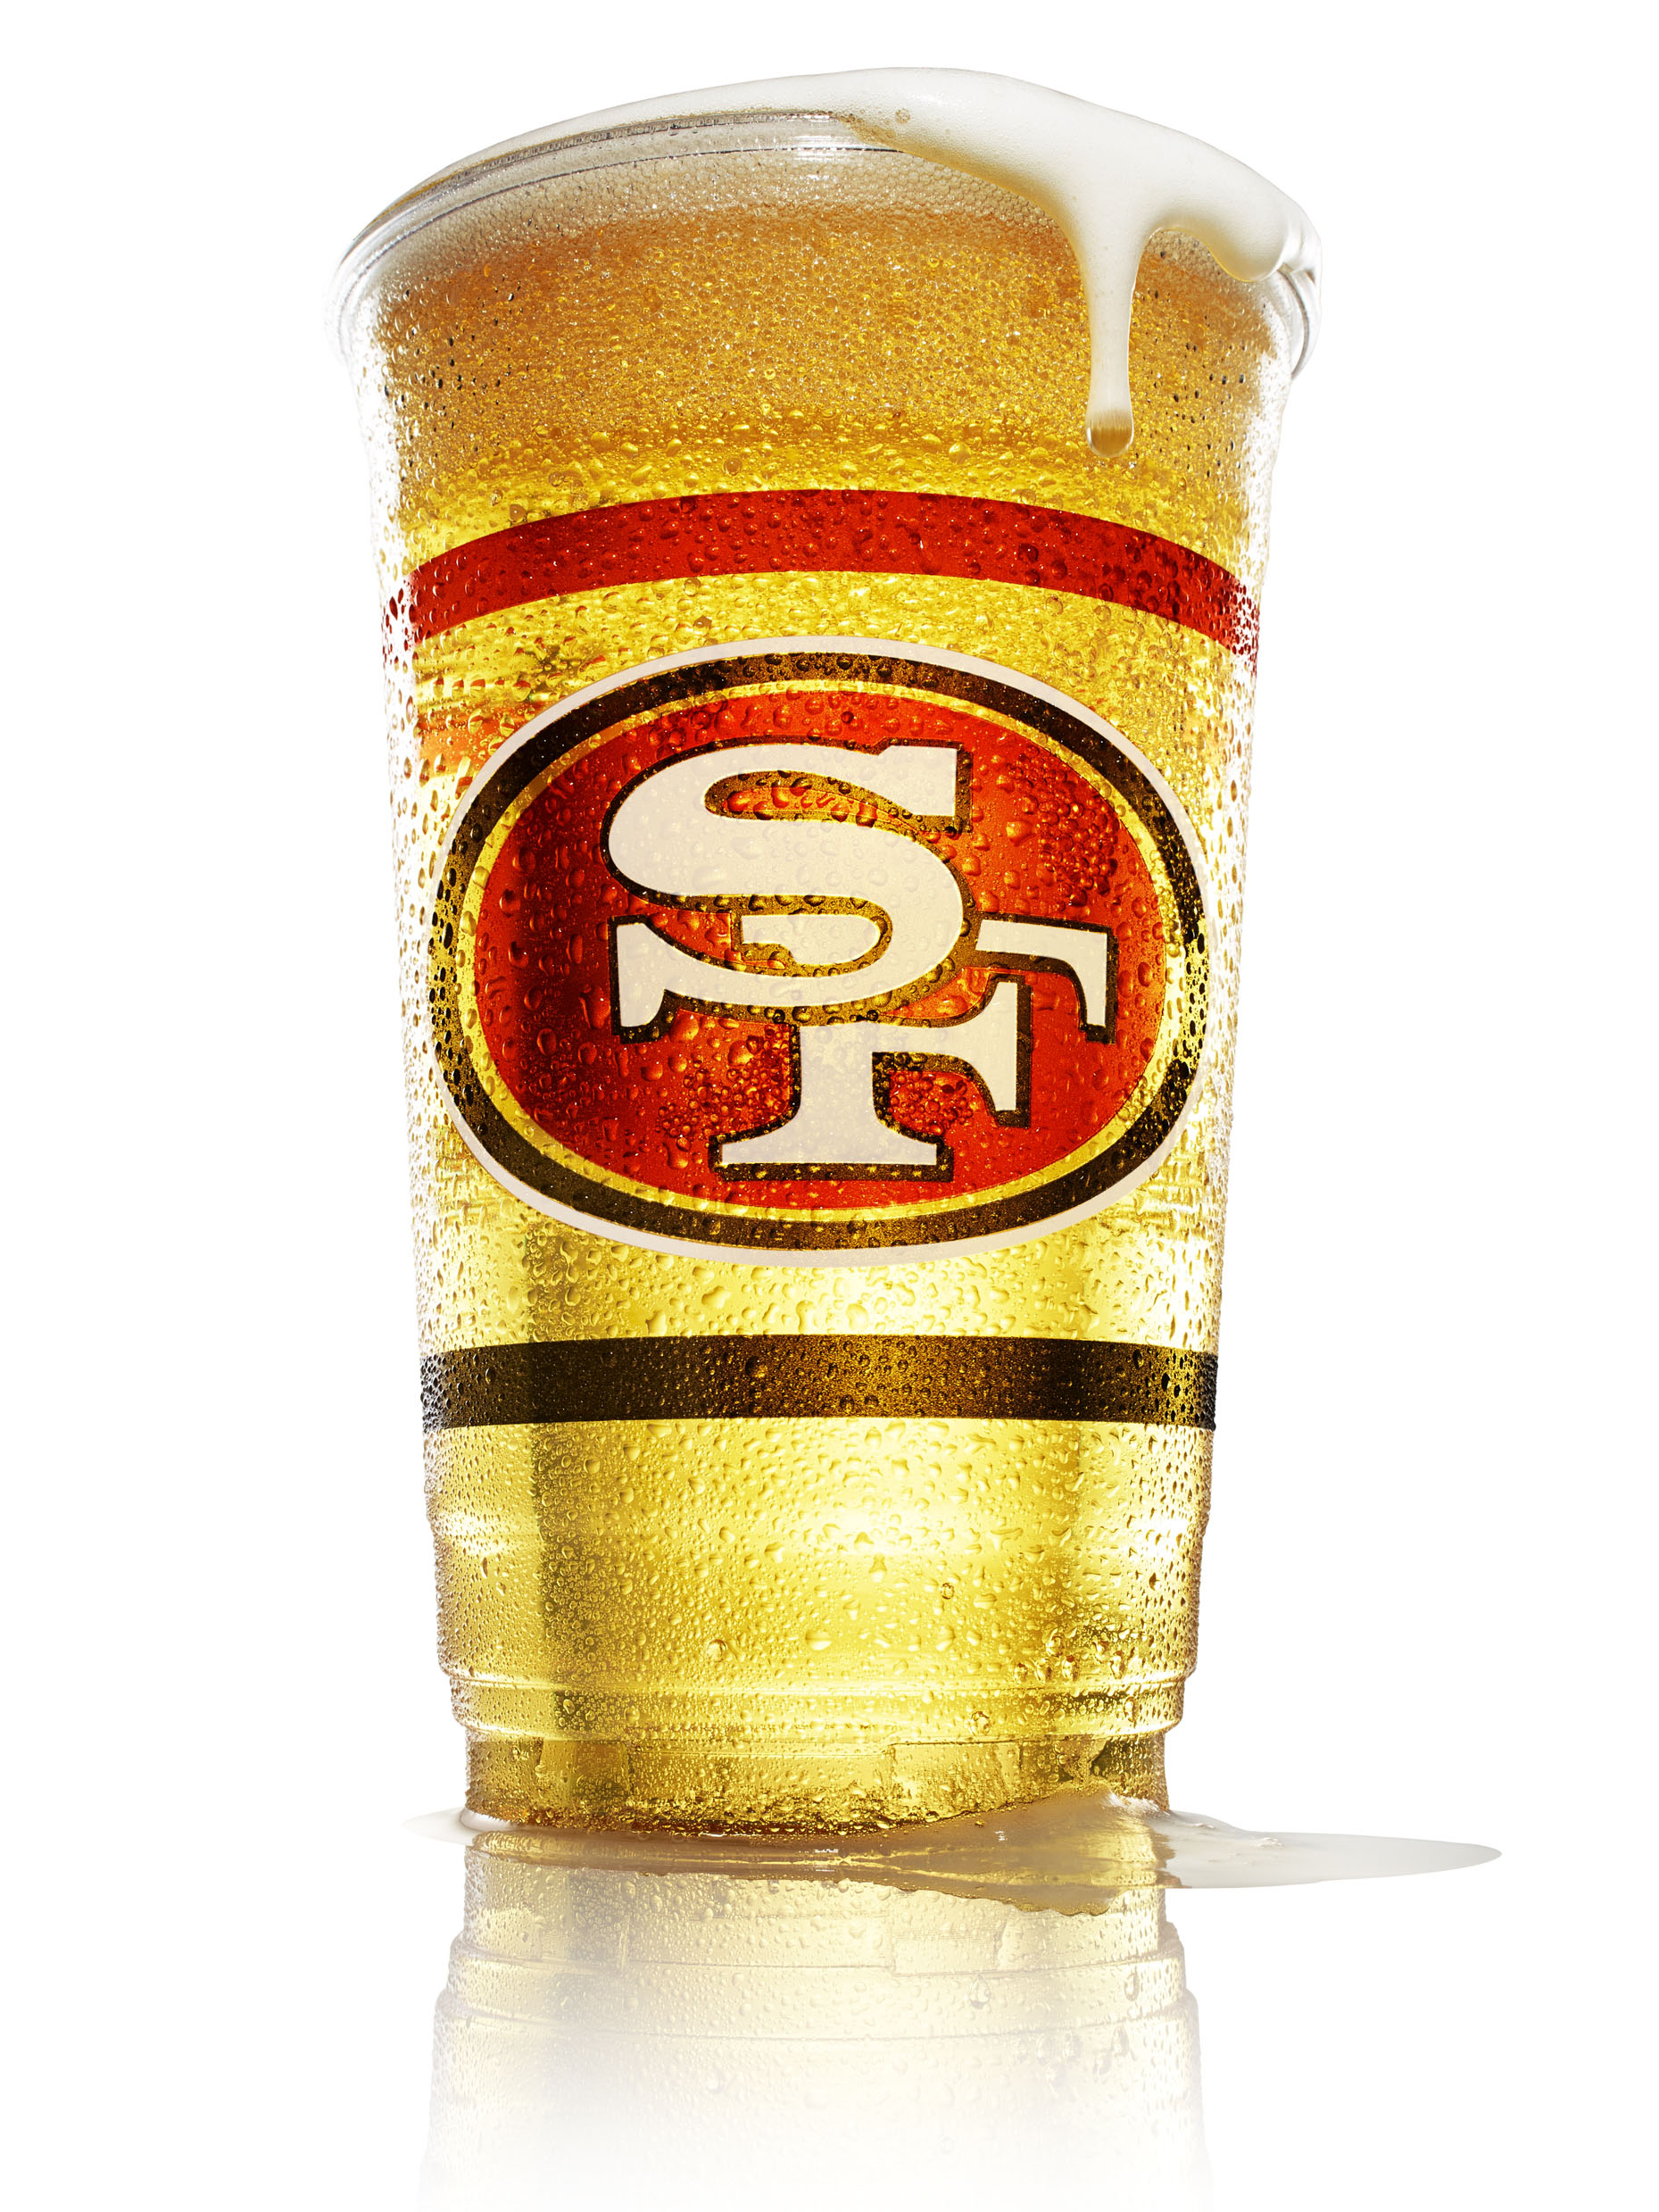 food stylist in San Francisco - large beer on tap with 49ers logo for San Francisco 49ers menu boards for Levi